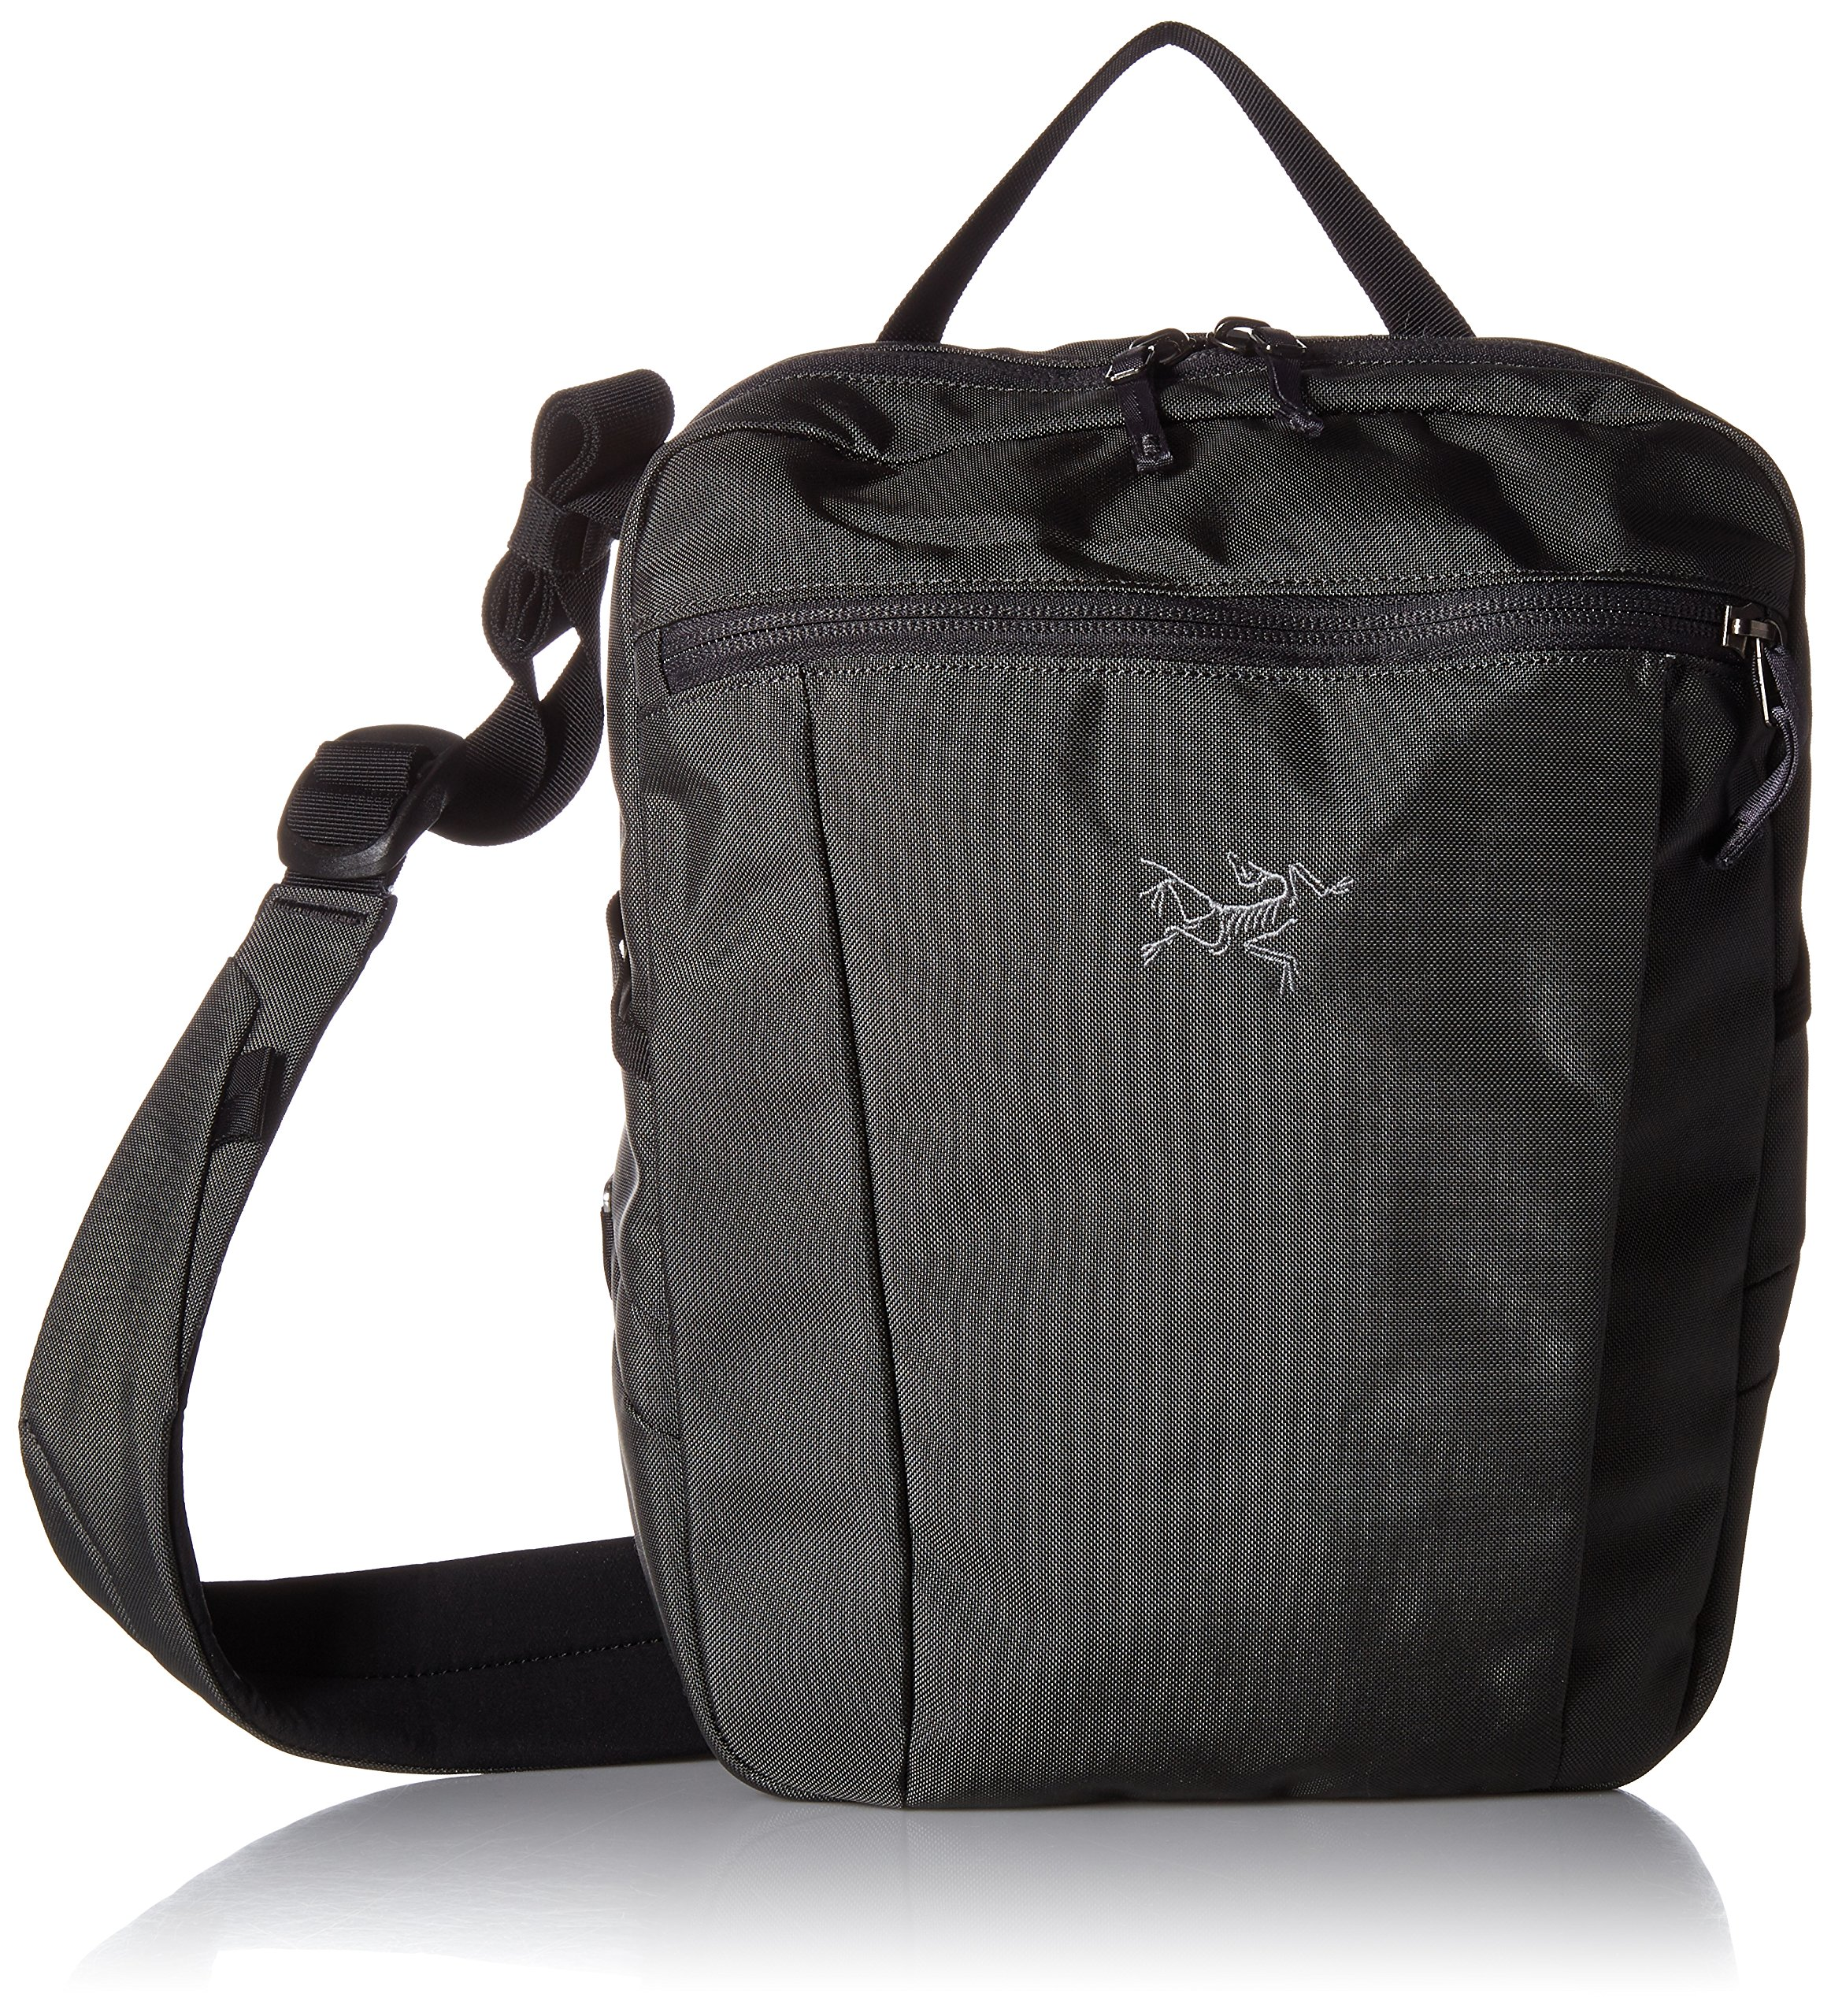 Arc'teryx Unisex Slingblade 4 Shoulder Bag Pilot One Size